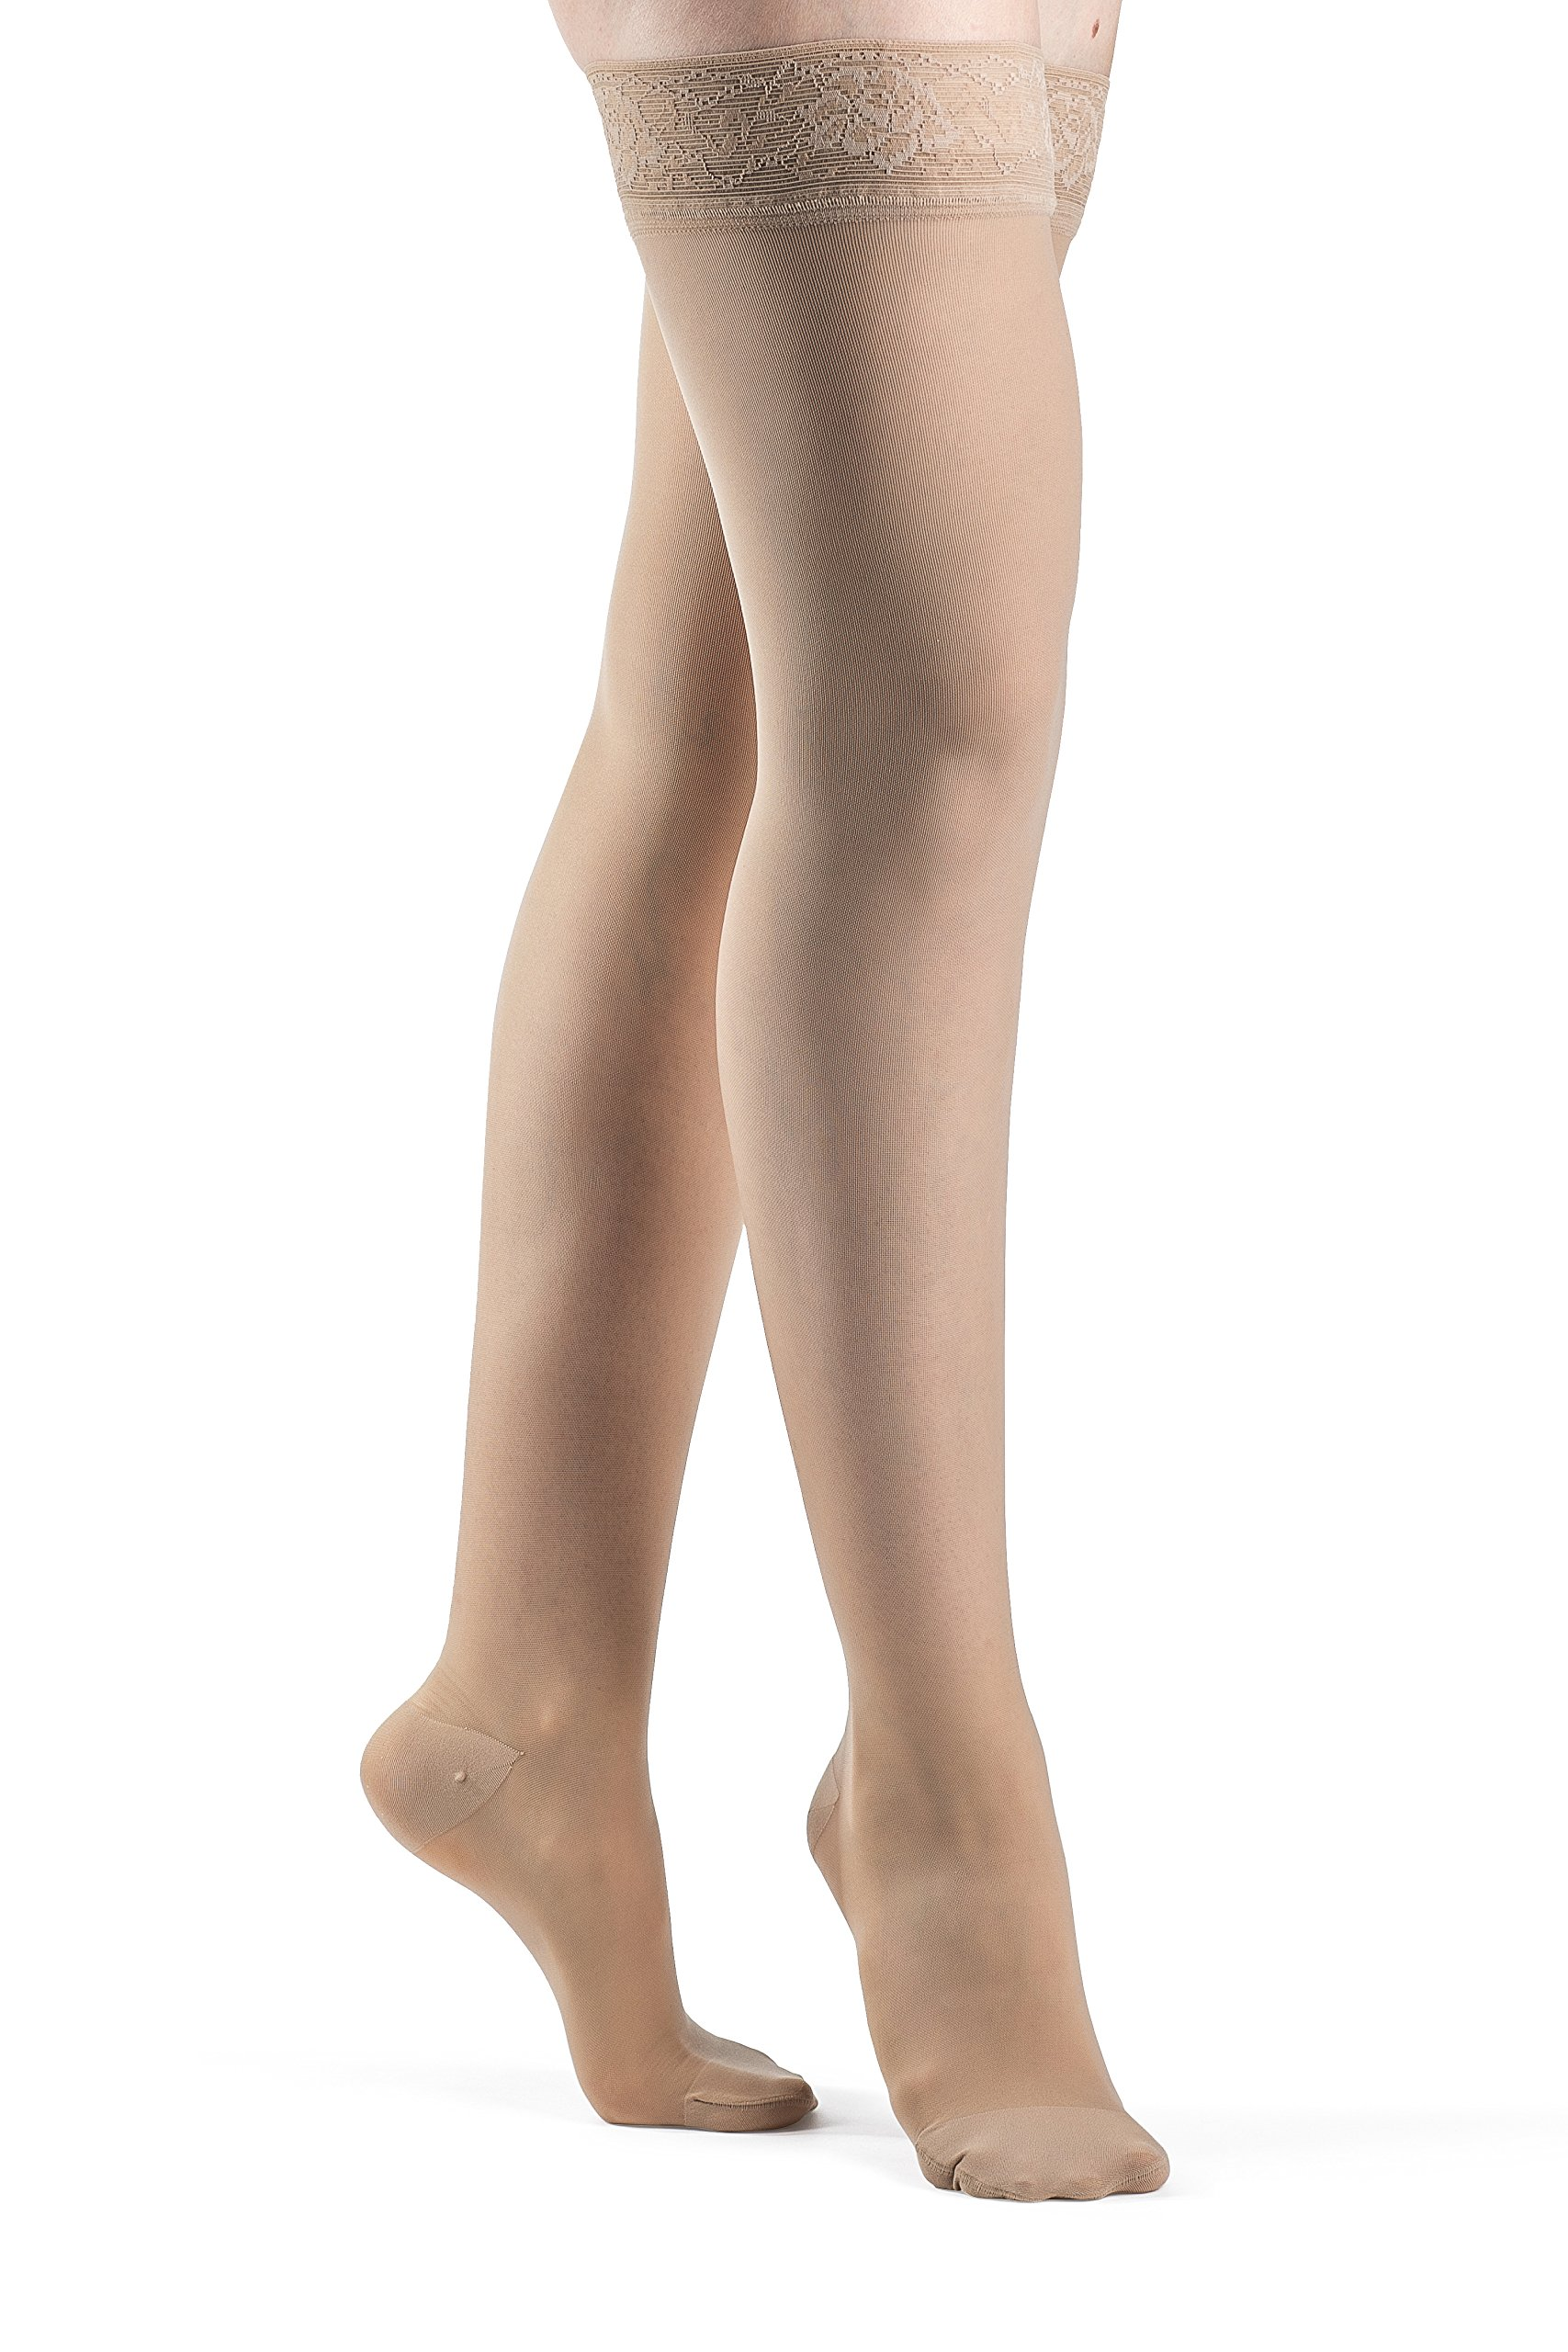 3f2249ad5 SIGVARIS Women s EVERSHEER 780 Closed Toe Thigh High w Grip-Top 15-20mmHg